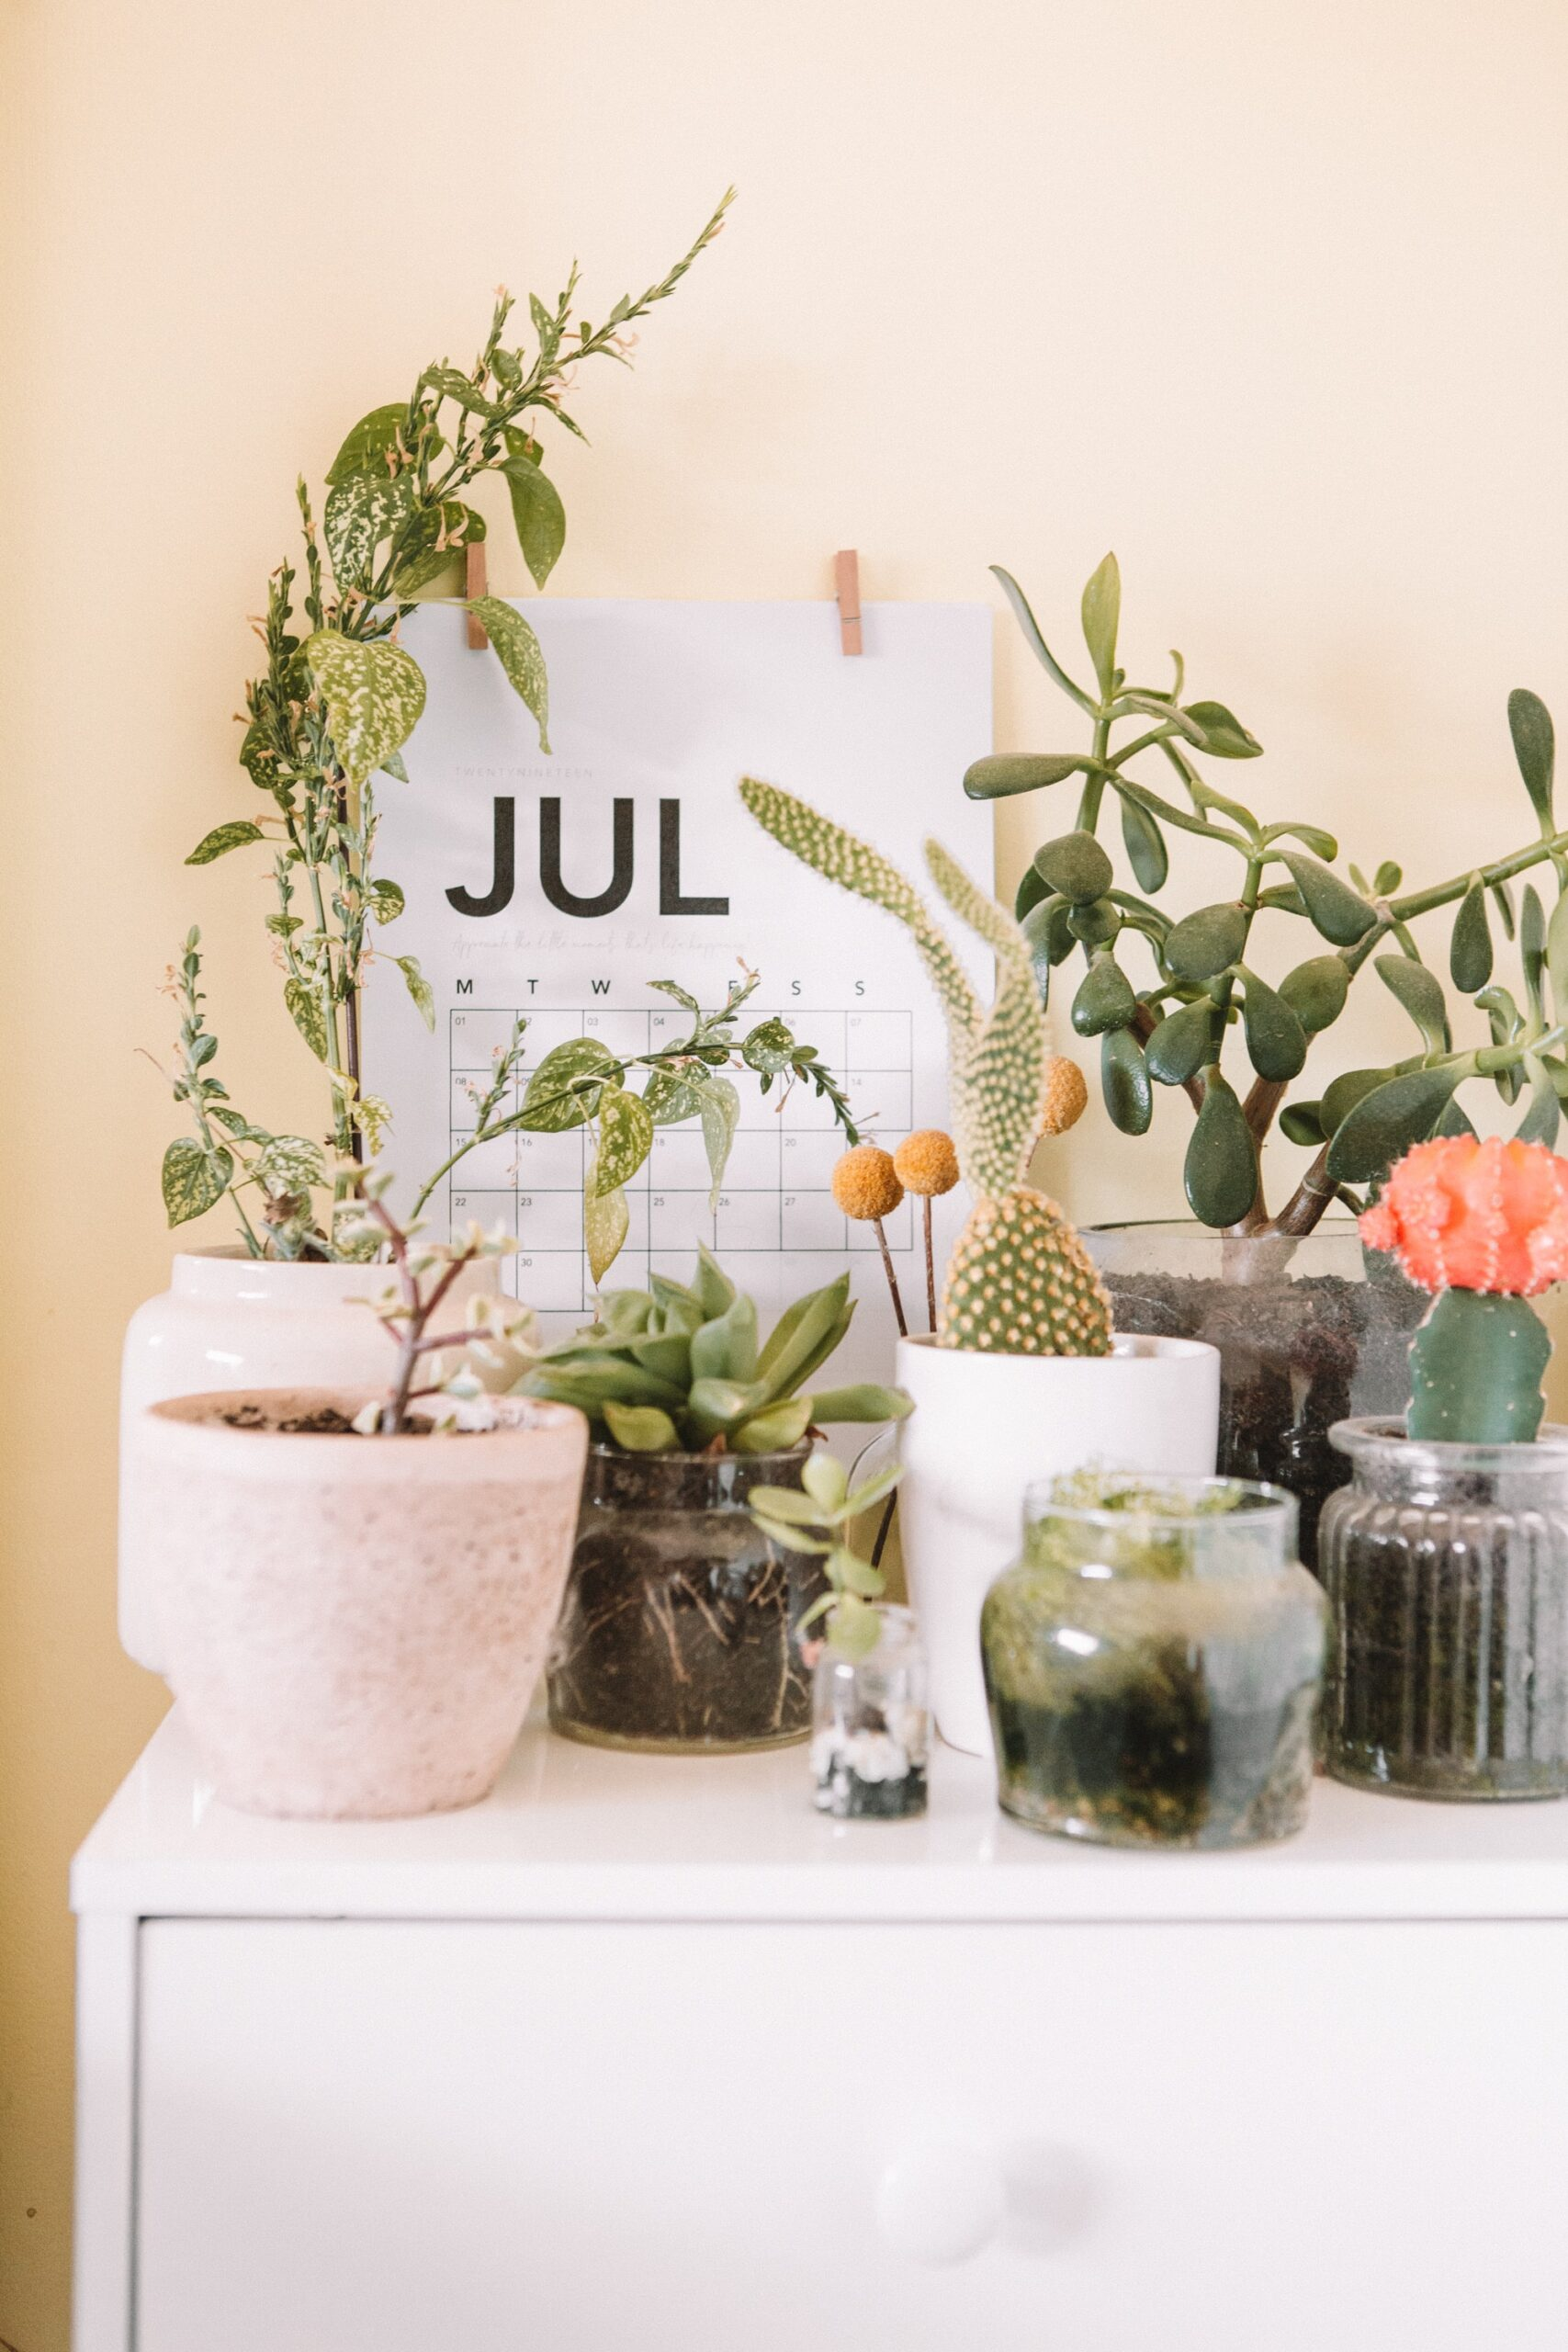 Day 61 (31st July) Reflections on July– The Year of Health